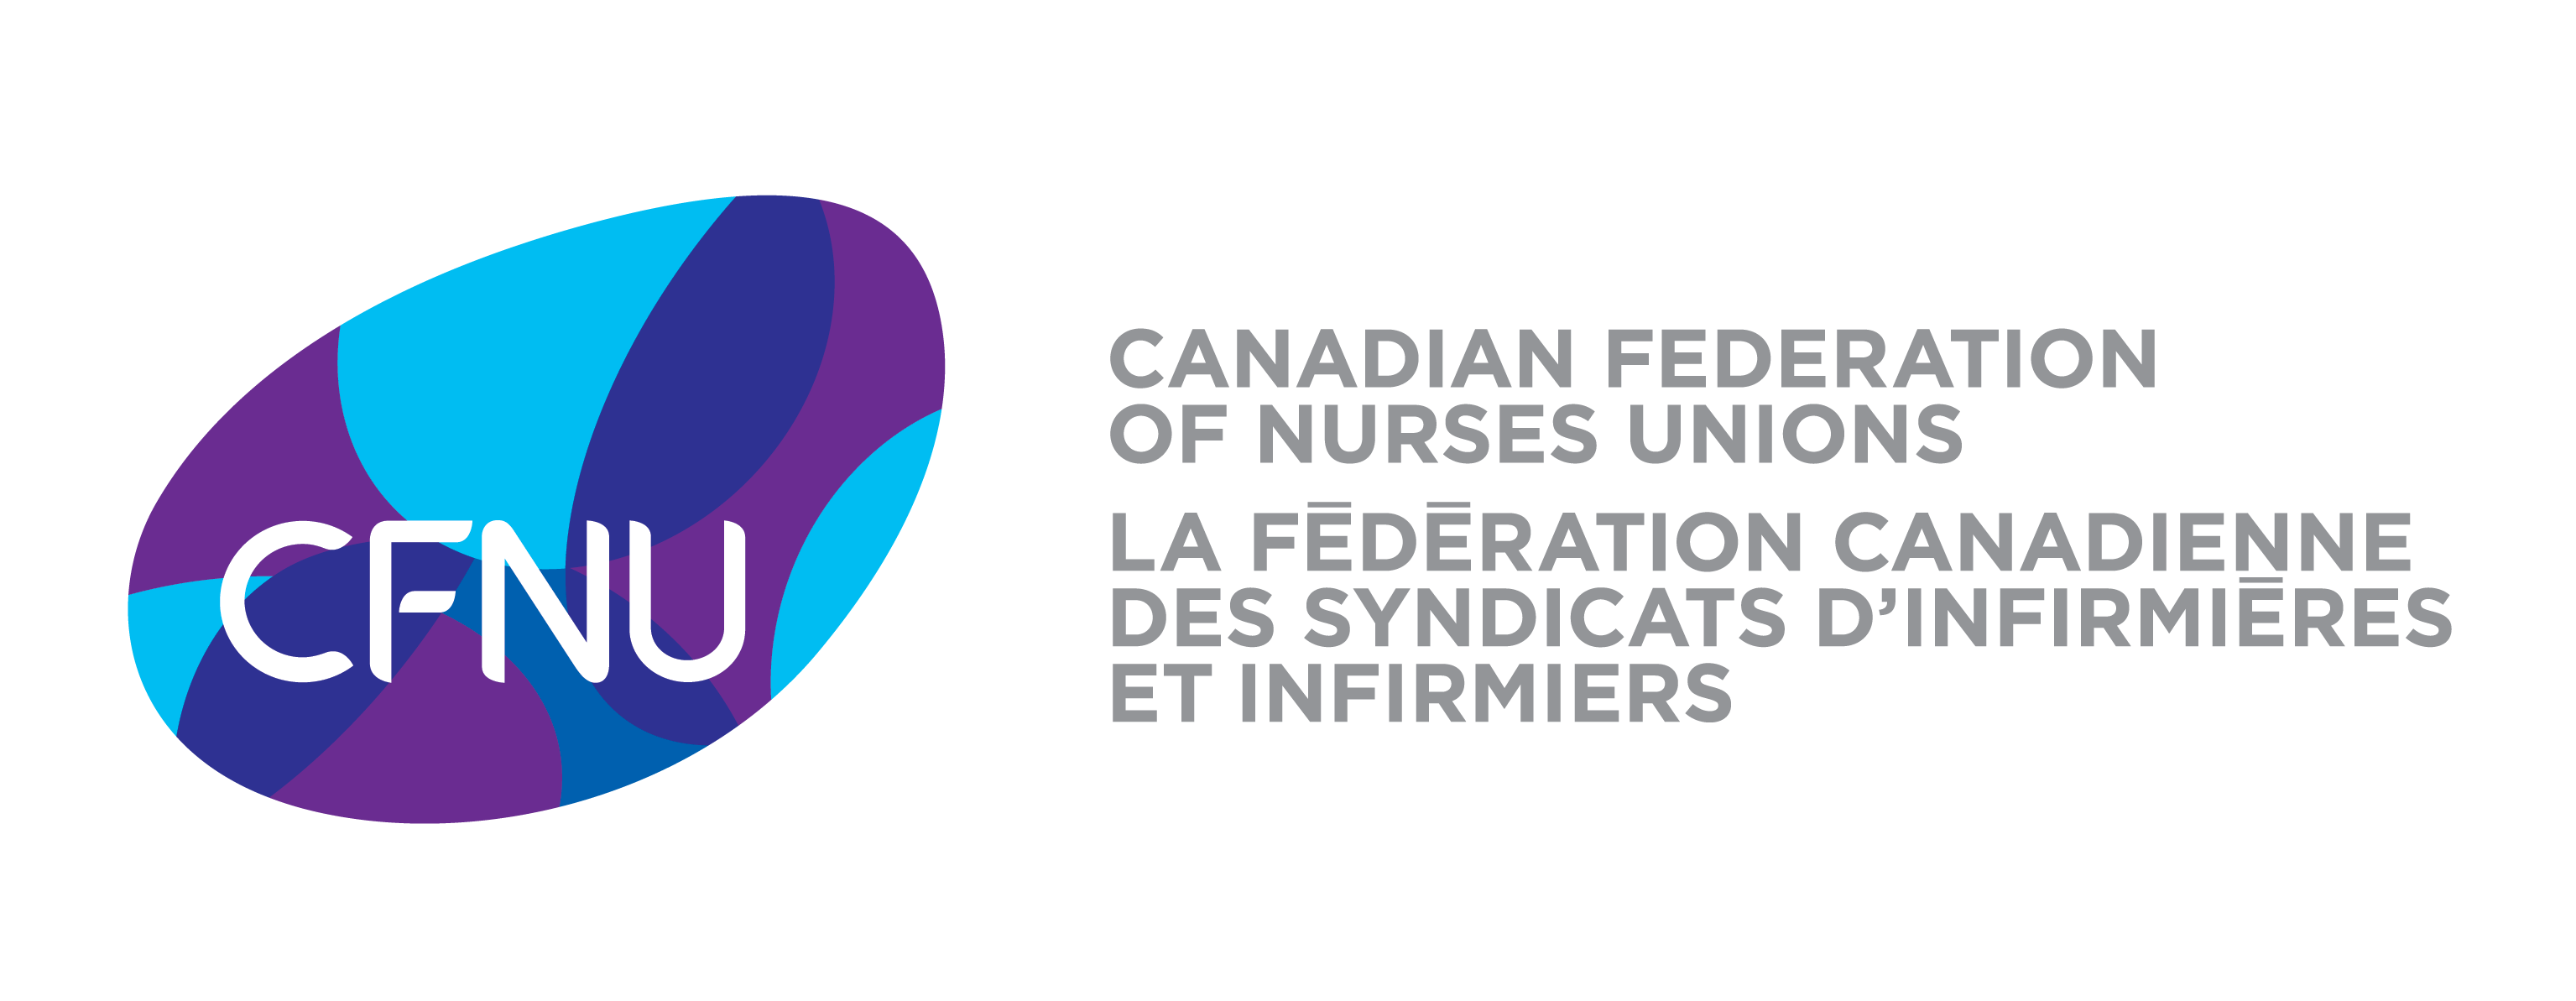 the canadian federation of nurses logo